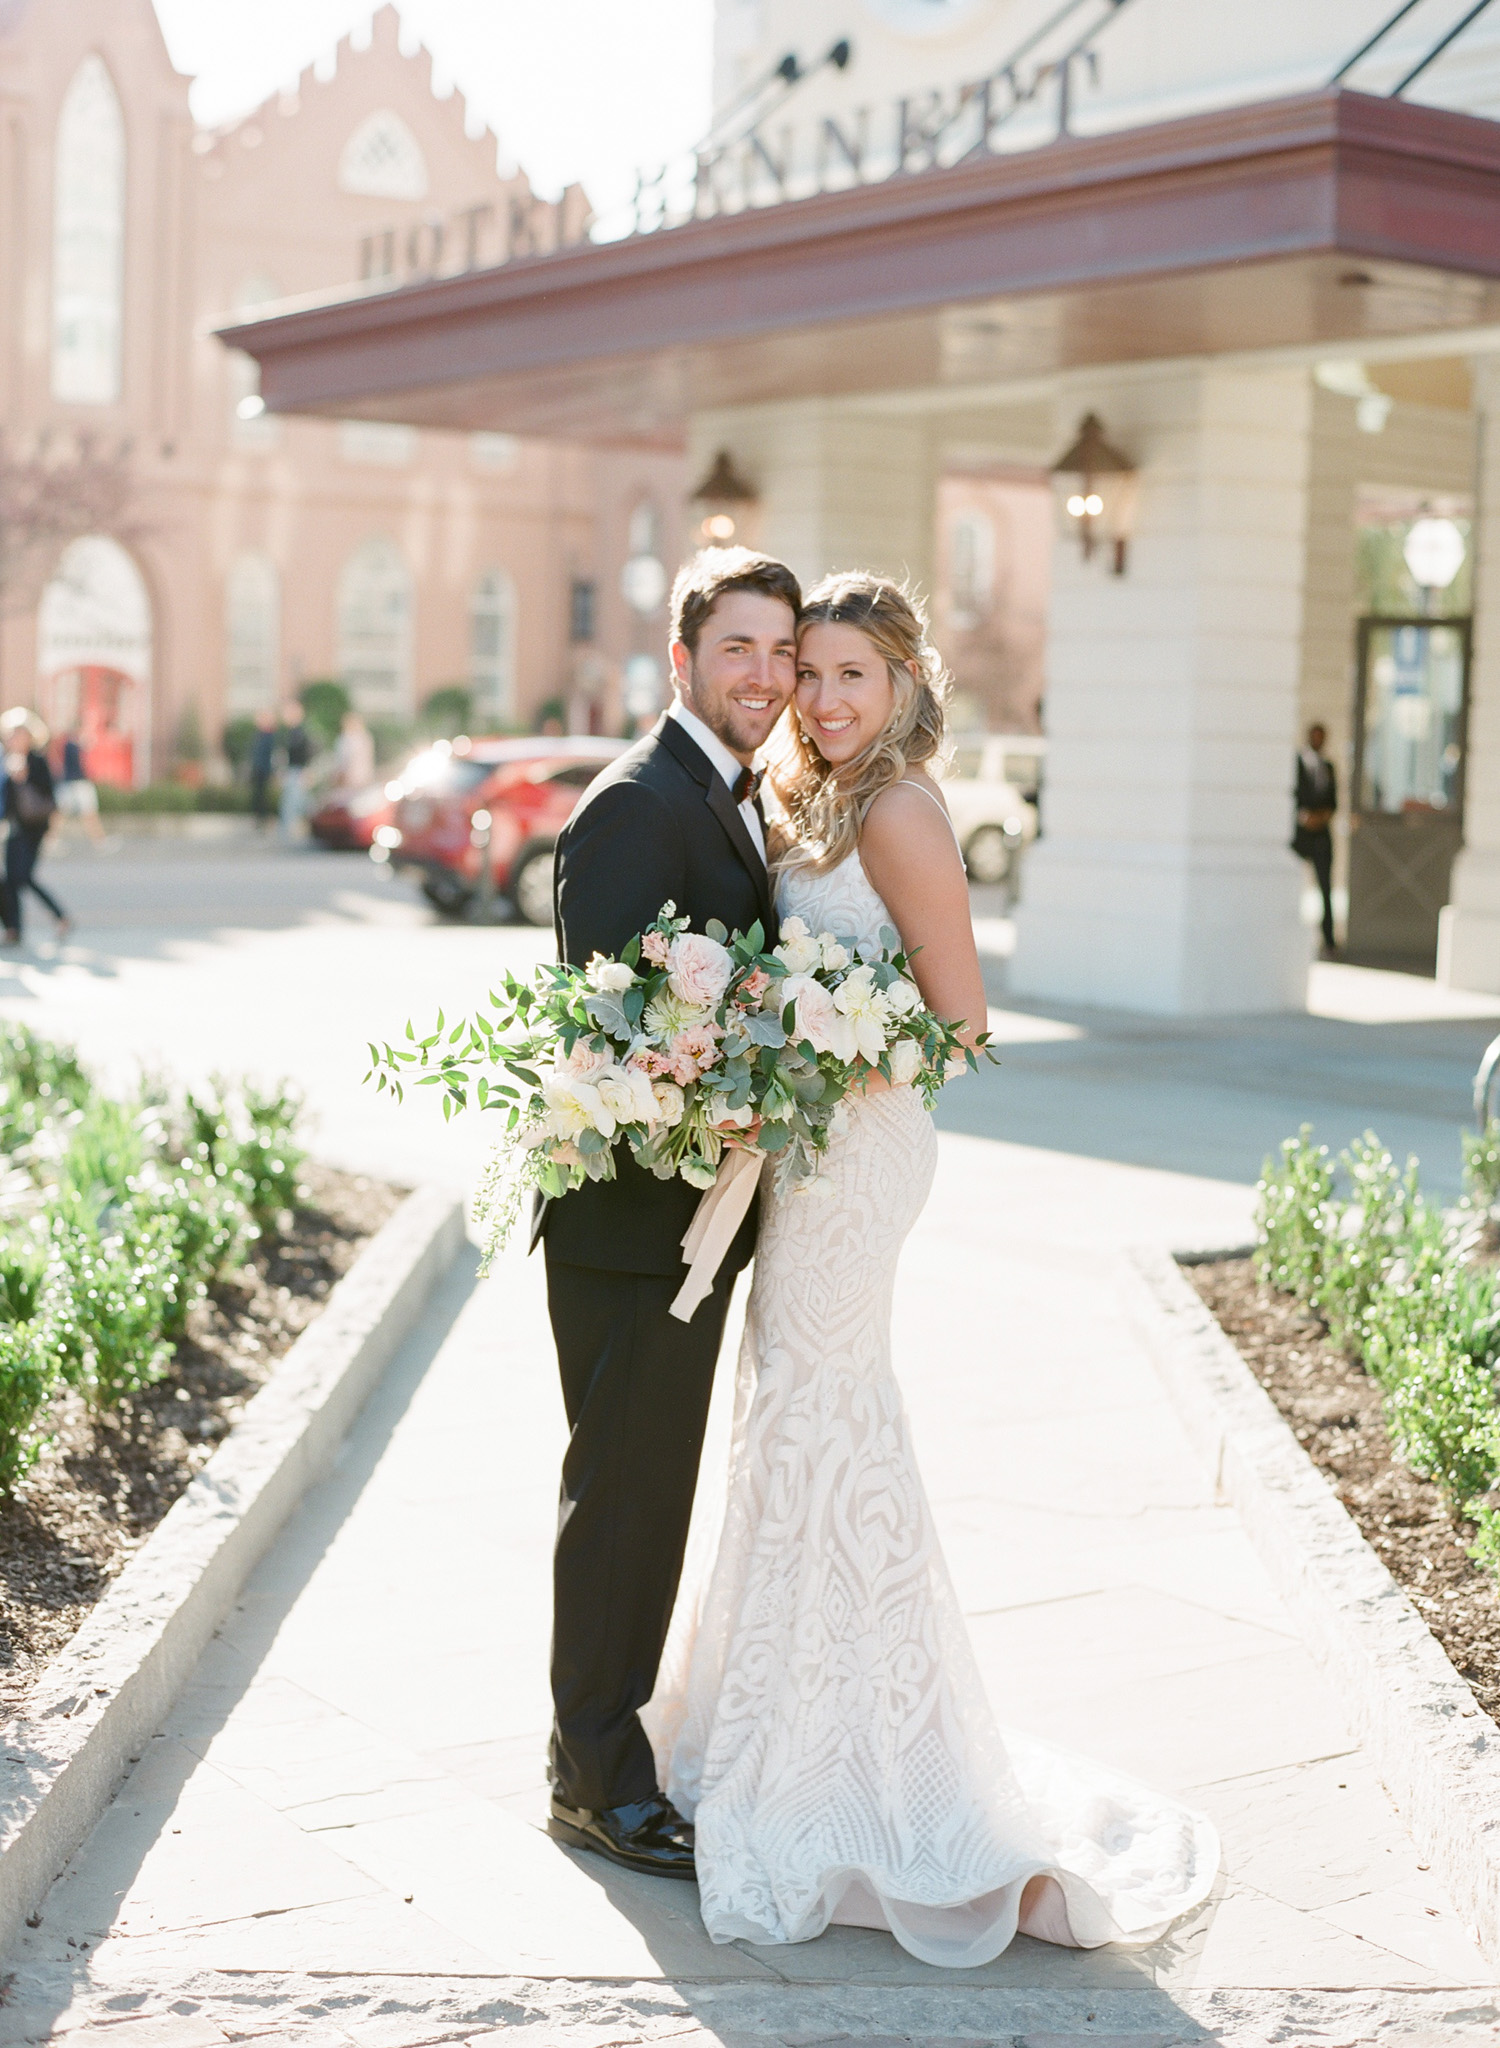 Charleston-Wedding-Hotel-Bennett-86.jpg